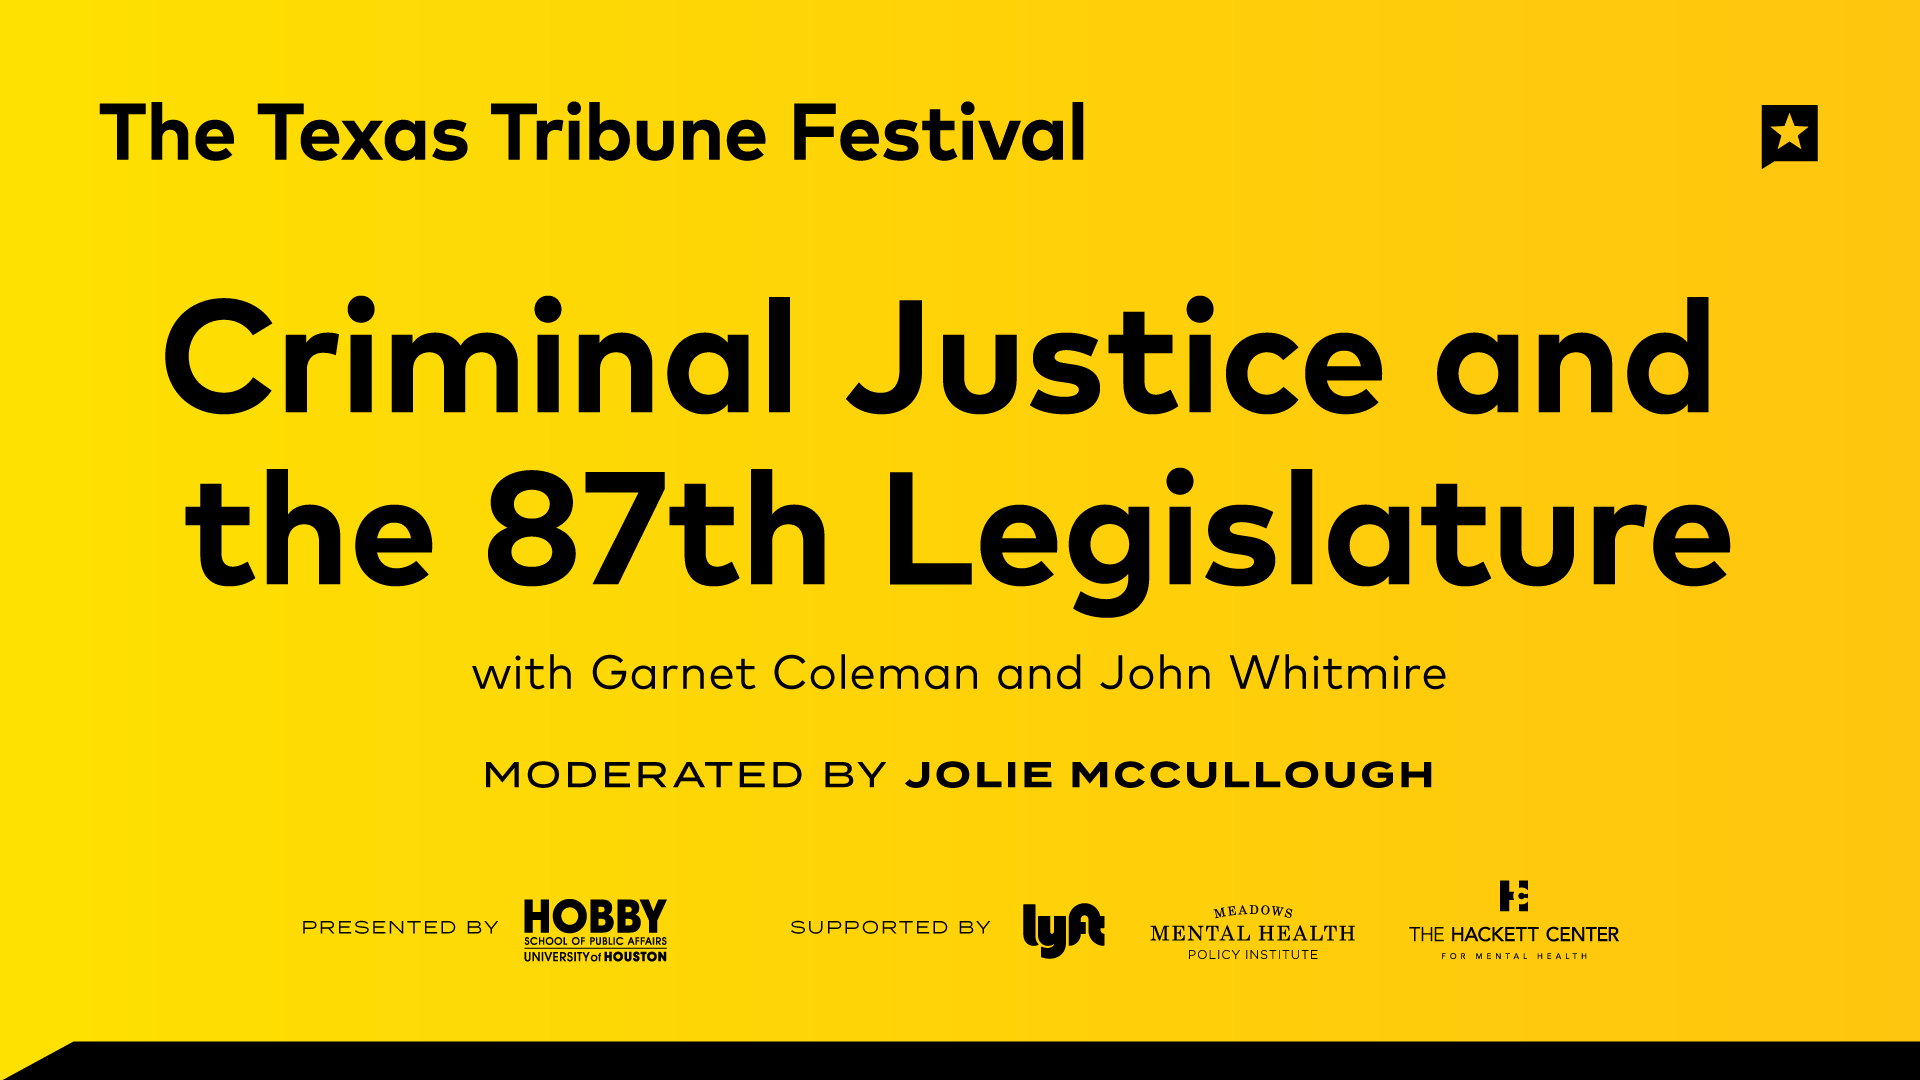 Criminal Justice and the 87th Legislature